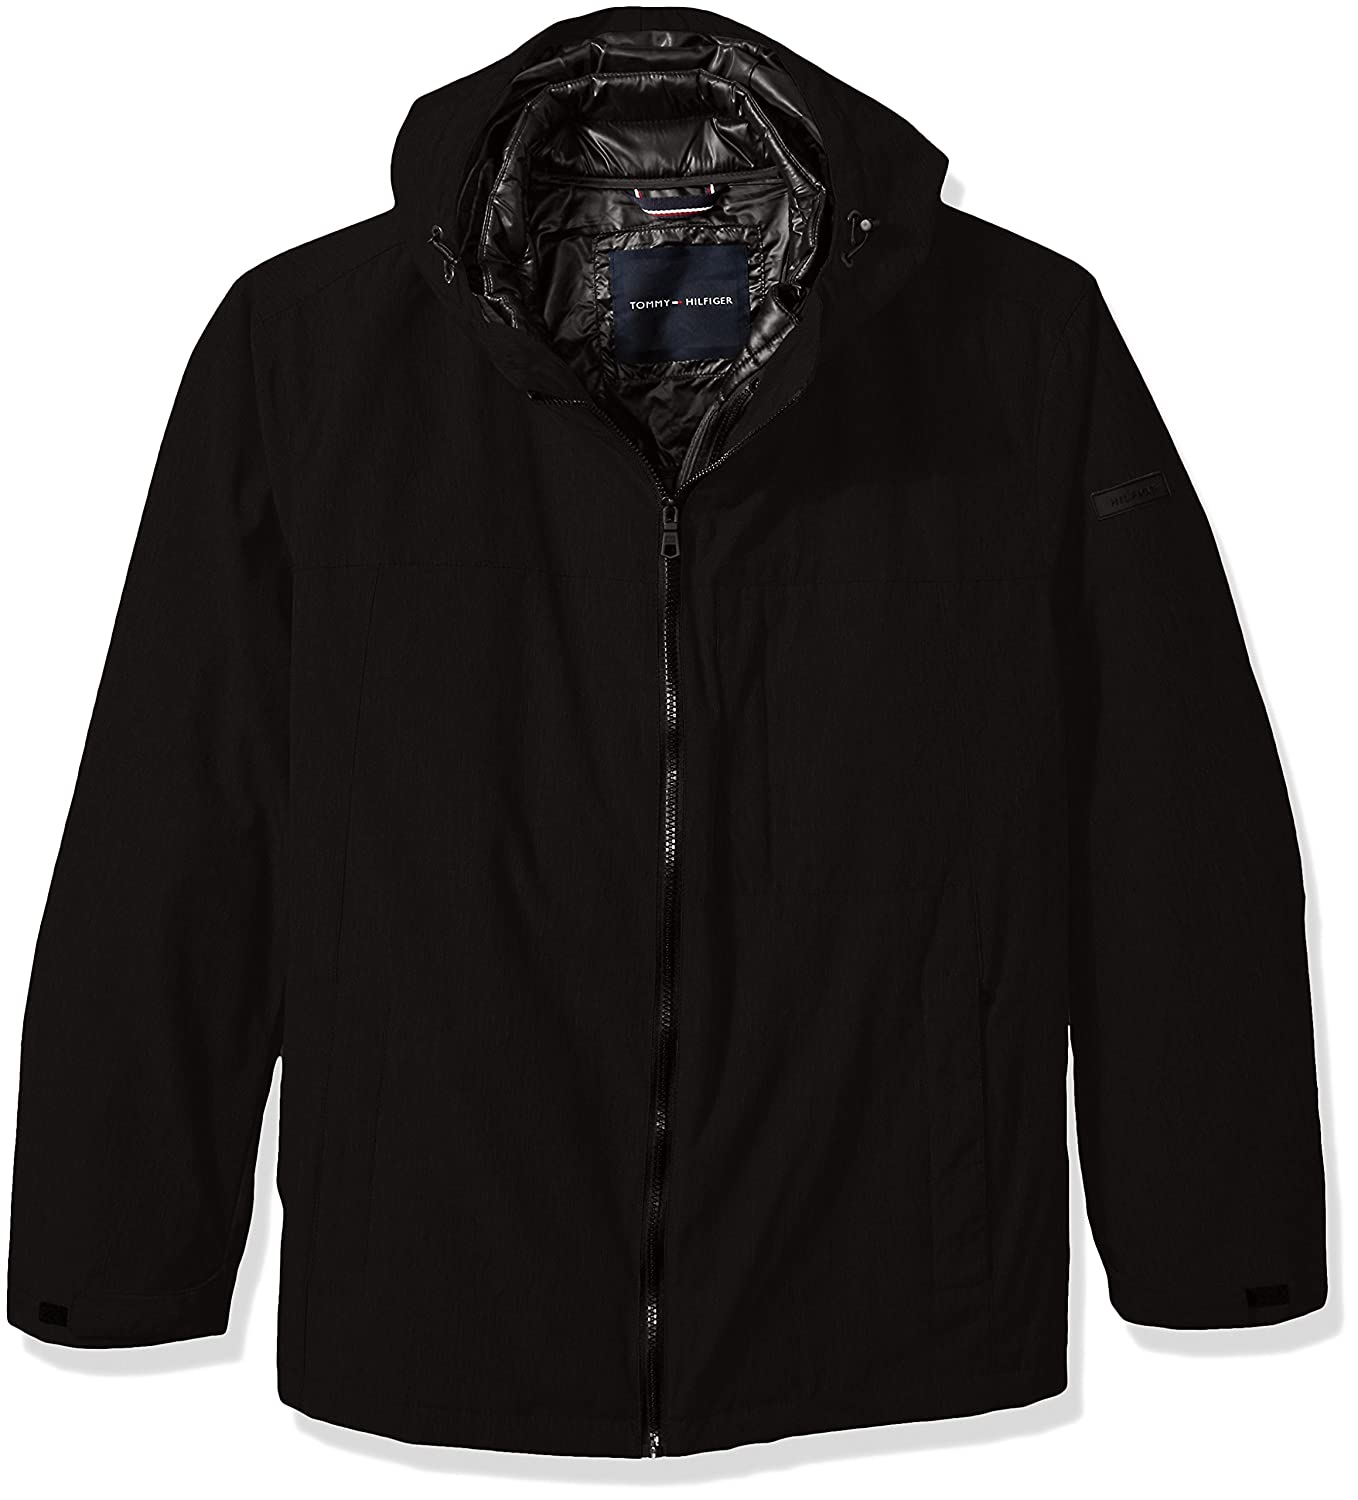 Tommy Hilfiger Men's Big Mountain Cloth 3-in-1 Systems Jacket 156XP149